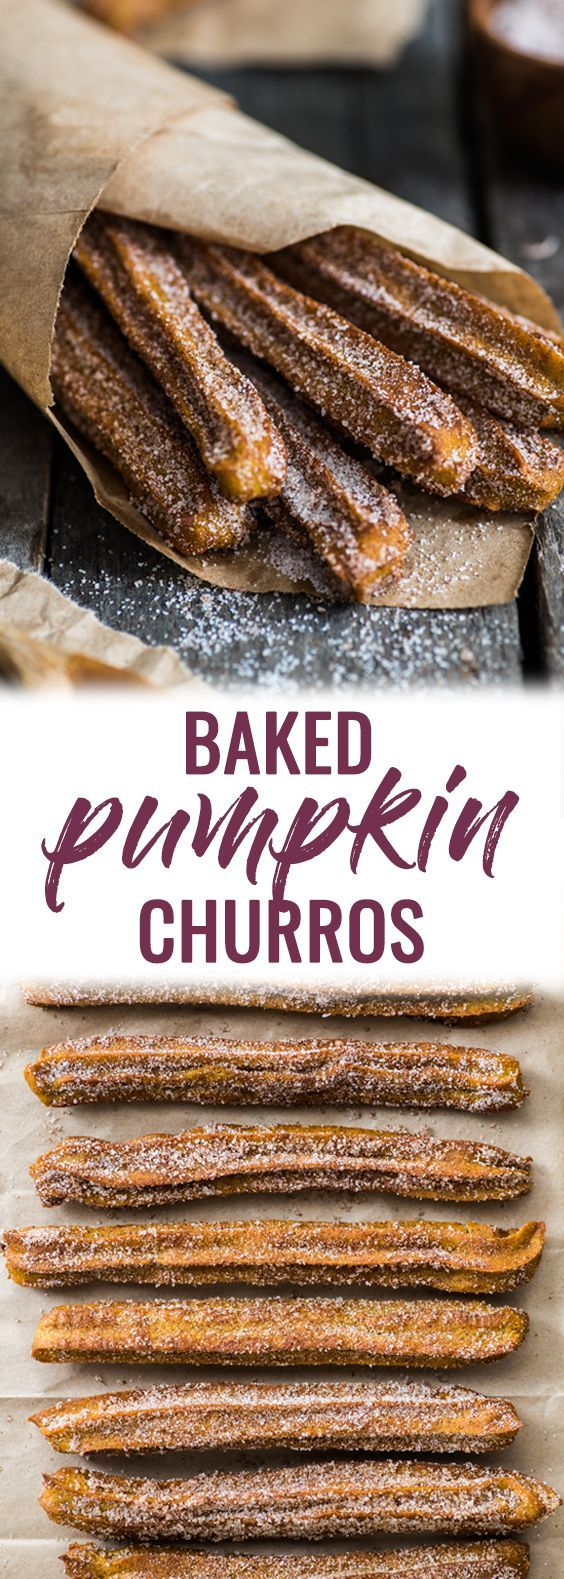 Baked Pumpkin Churros covered in cinnamon sugar are the perfect fall and winter dessert. They're baked, not fried, which means you can eat more of them! | mexican churros | baked churros | fall dessert | pumpkin recipes | healthy churros | baked dessert | http://healthyquickly.com